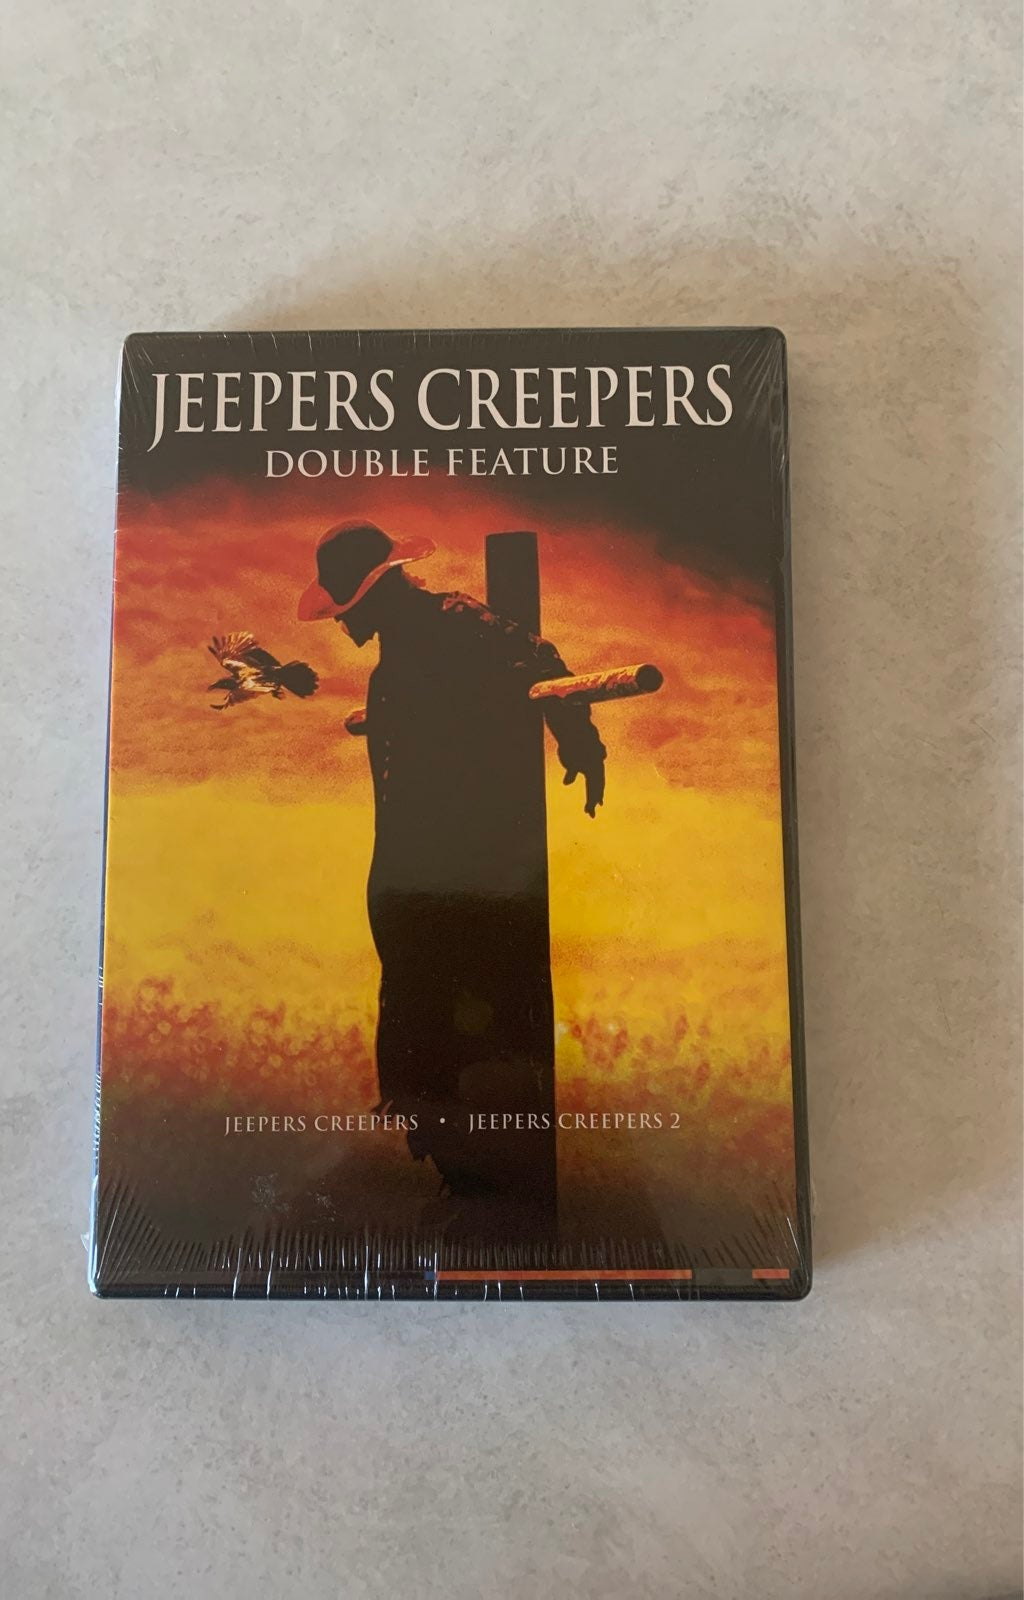 Double feature dvd FS